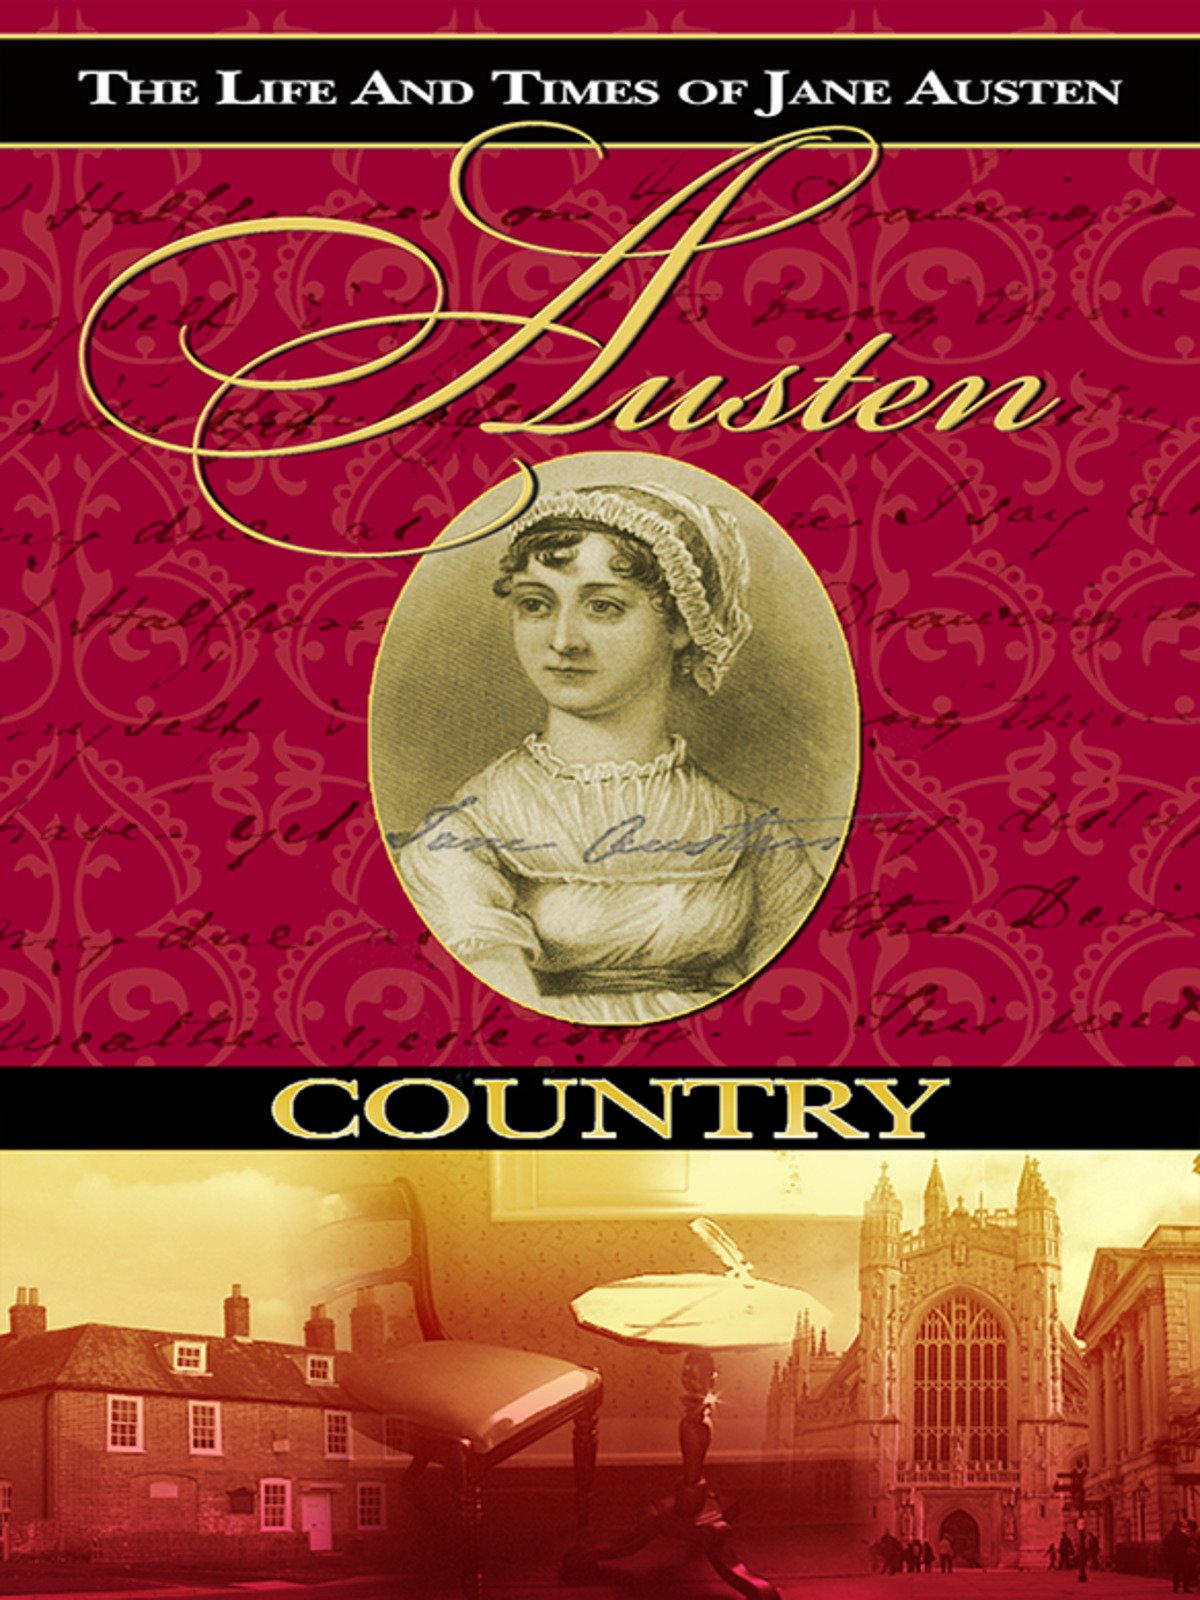 Jane Austen Country: The Life & Times of Jane Austen